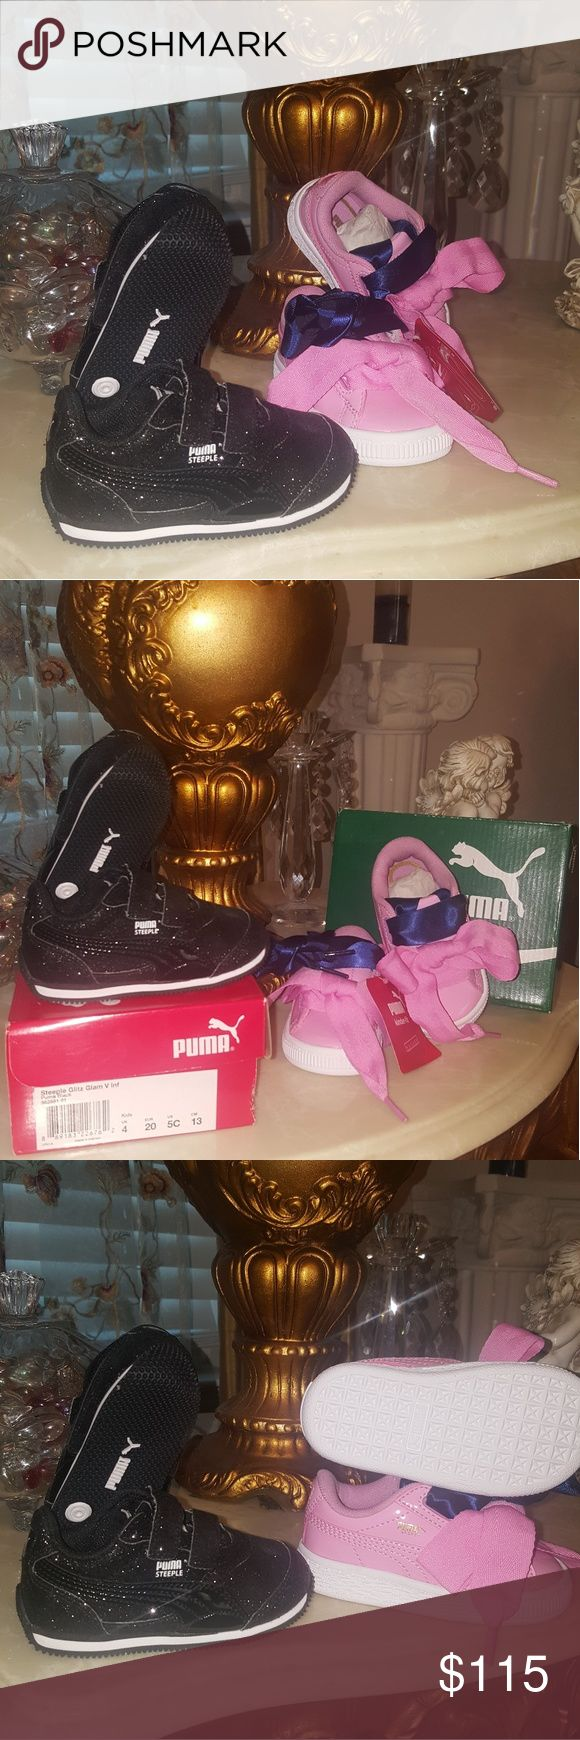 NWT Toddler 2 Puma Deal Both shoes are new with tags. Deal comes with 1 black sparkly pair and 1 pink patent satin bow pair. Comes with blue and pink bows in original boxing. Not sold separately! Puma Shoes Sneakers